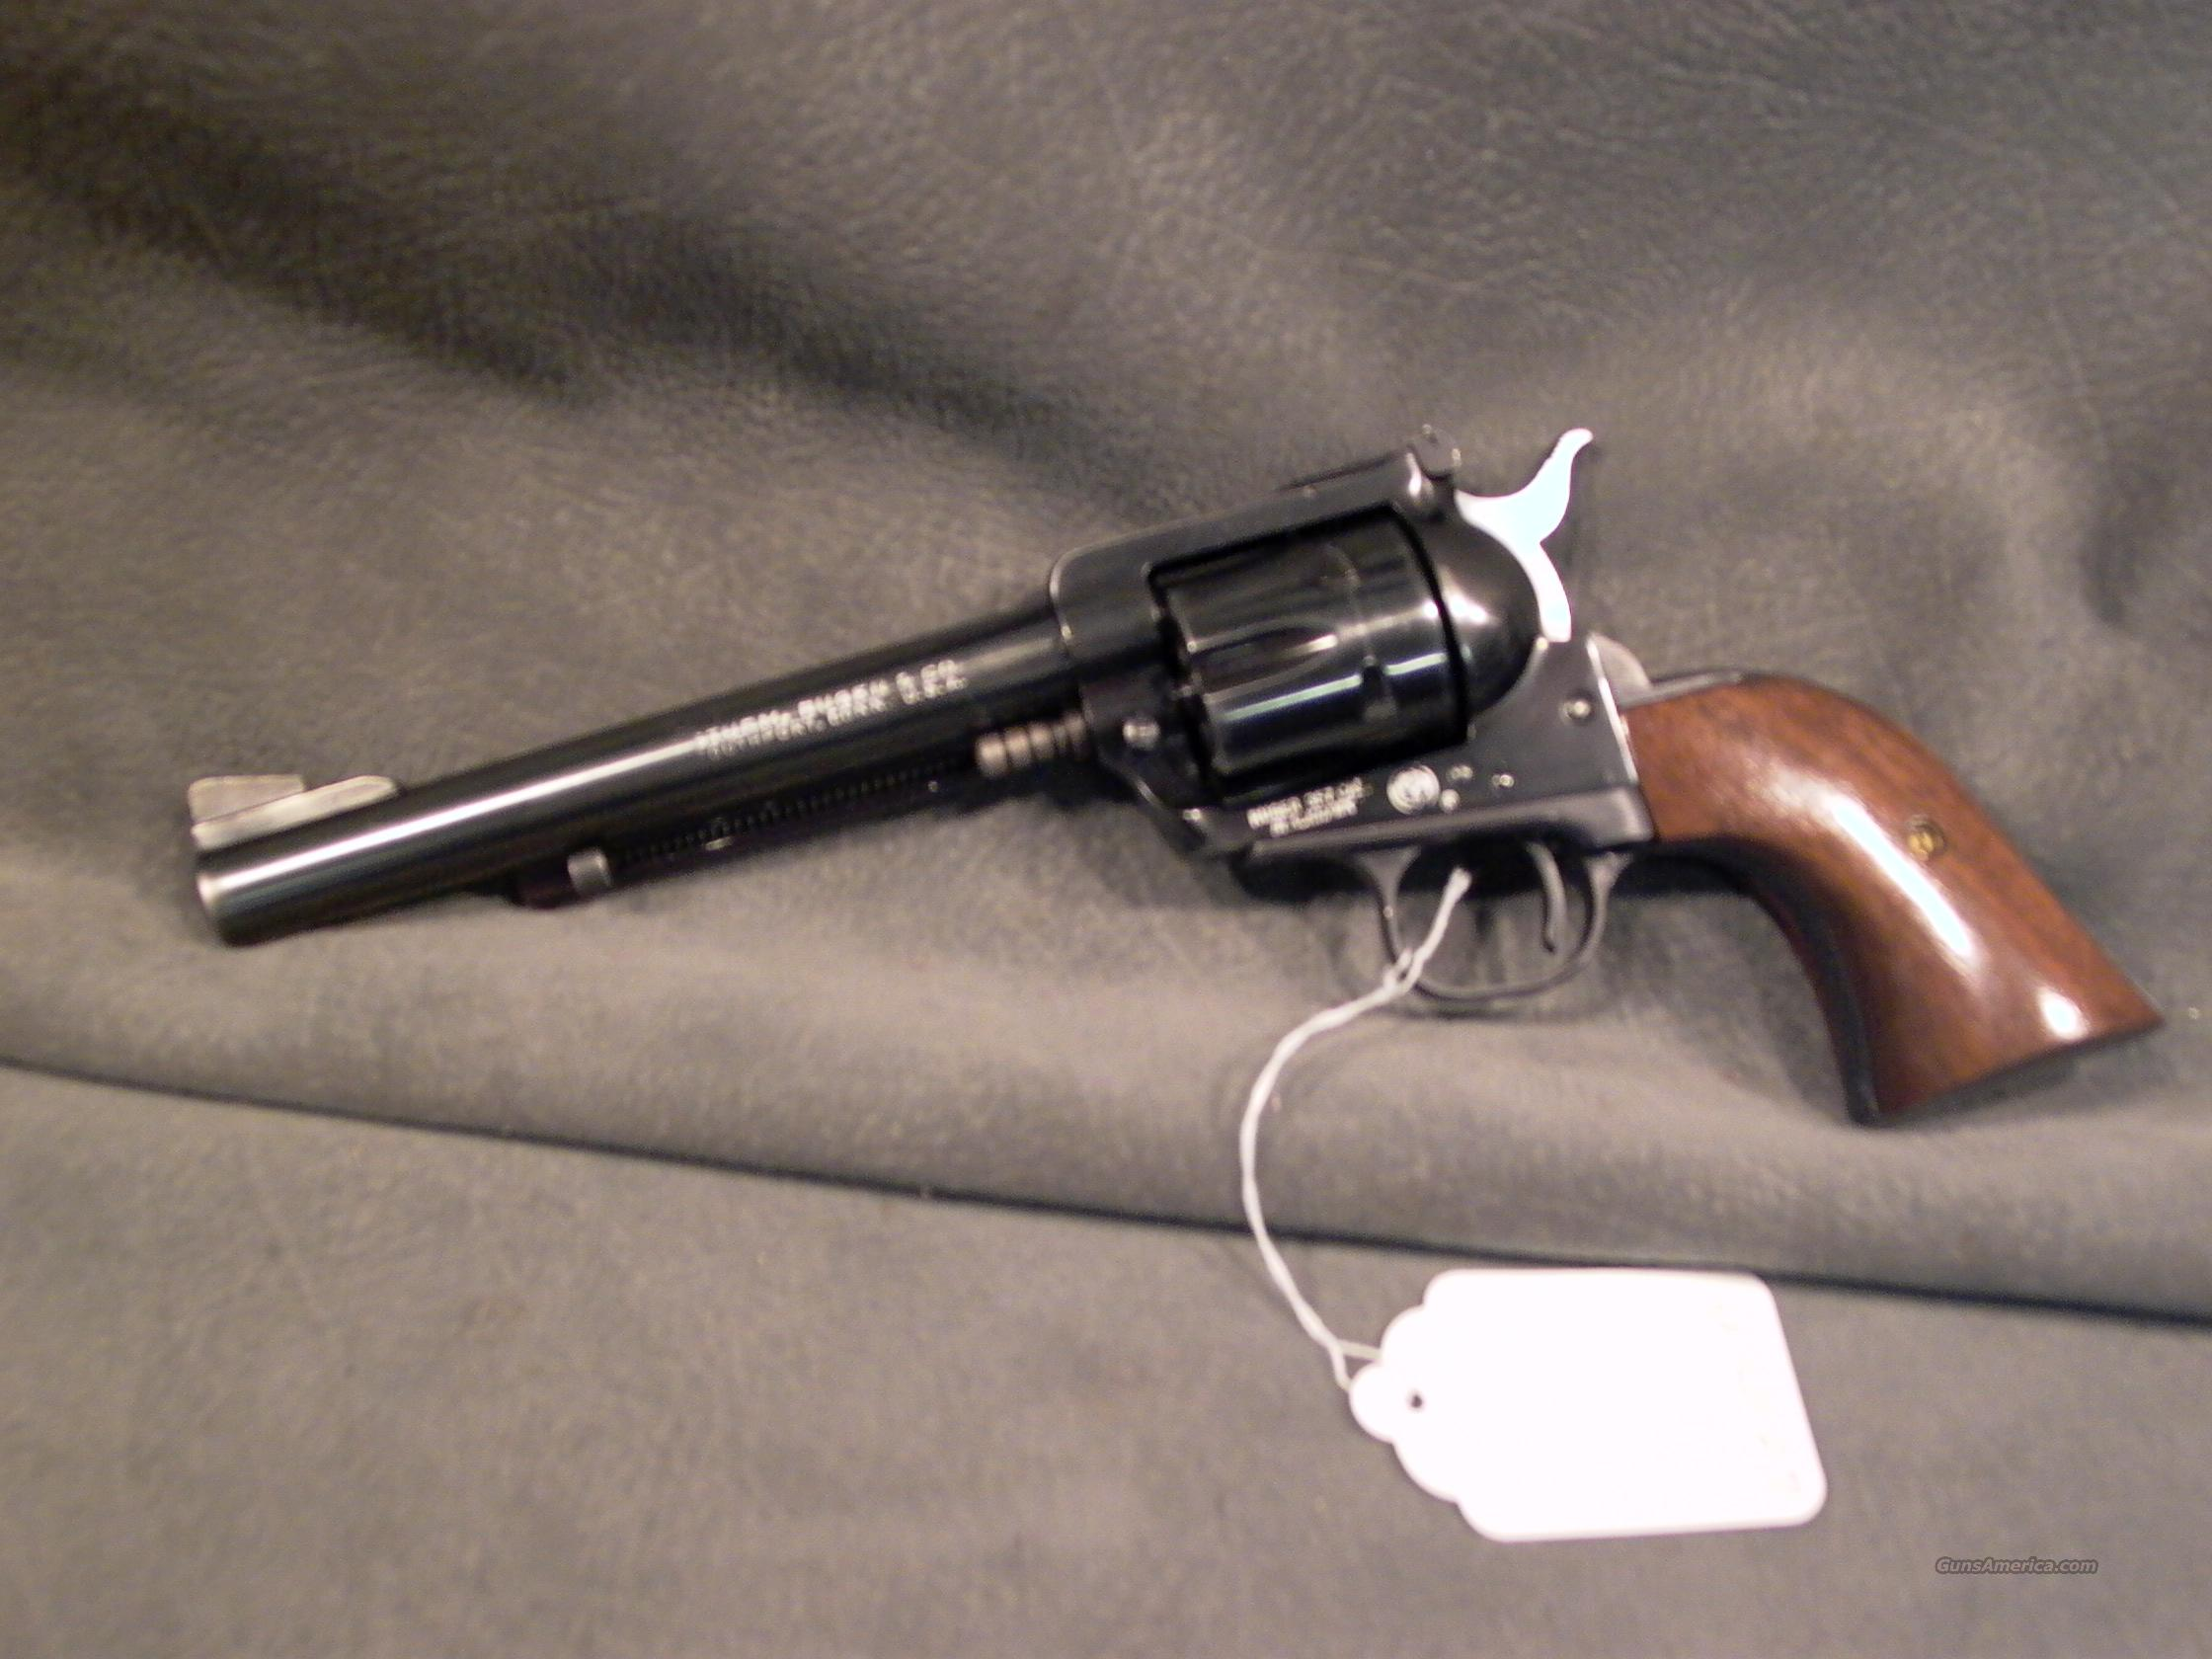 "Ruger OM Blackhawk 357Mag 6 1/2""  Guns > Pistols > Ruger Single Action Revolvers > Blackhawk Type"